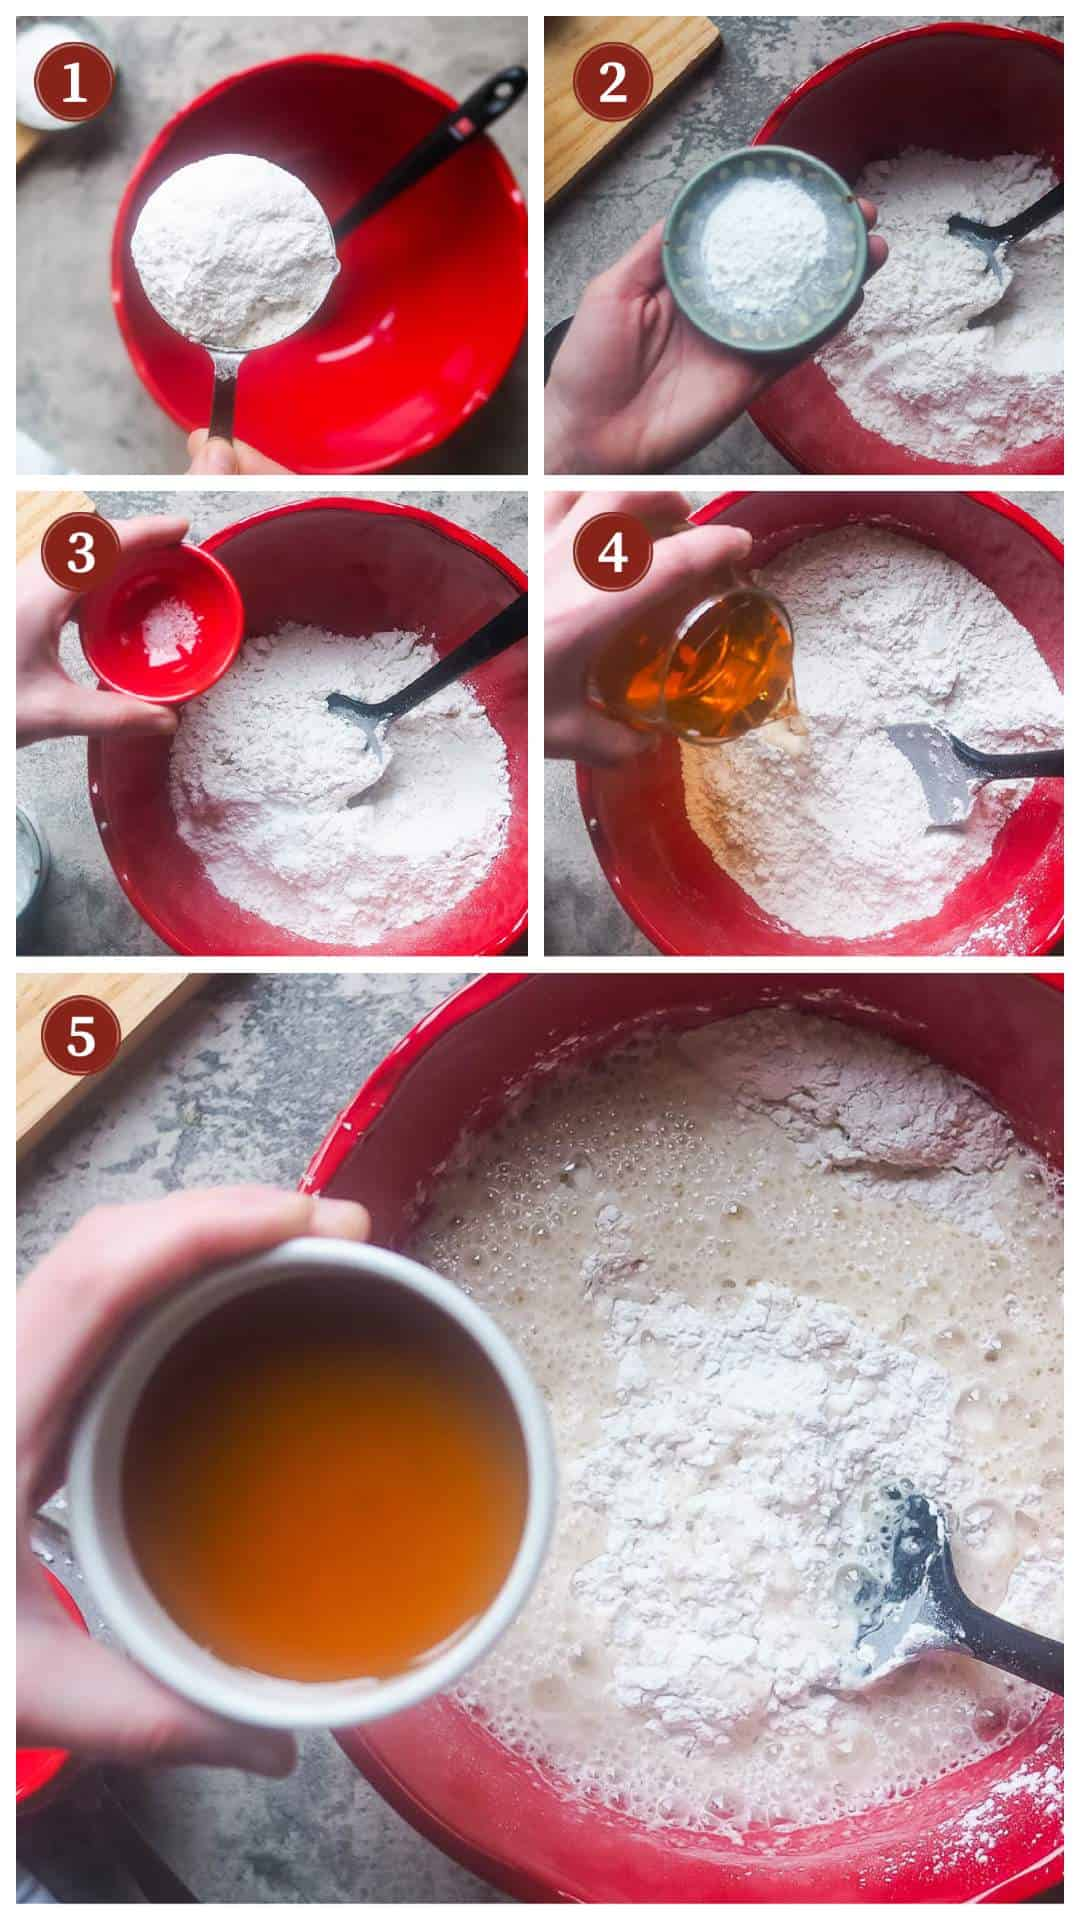 A collage of images showing the process of making beer bread, steps 1 - 5.